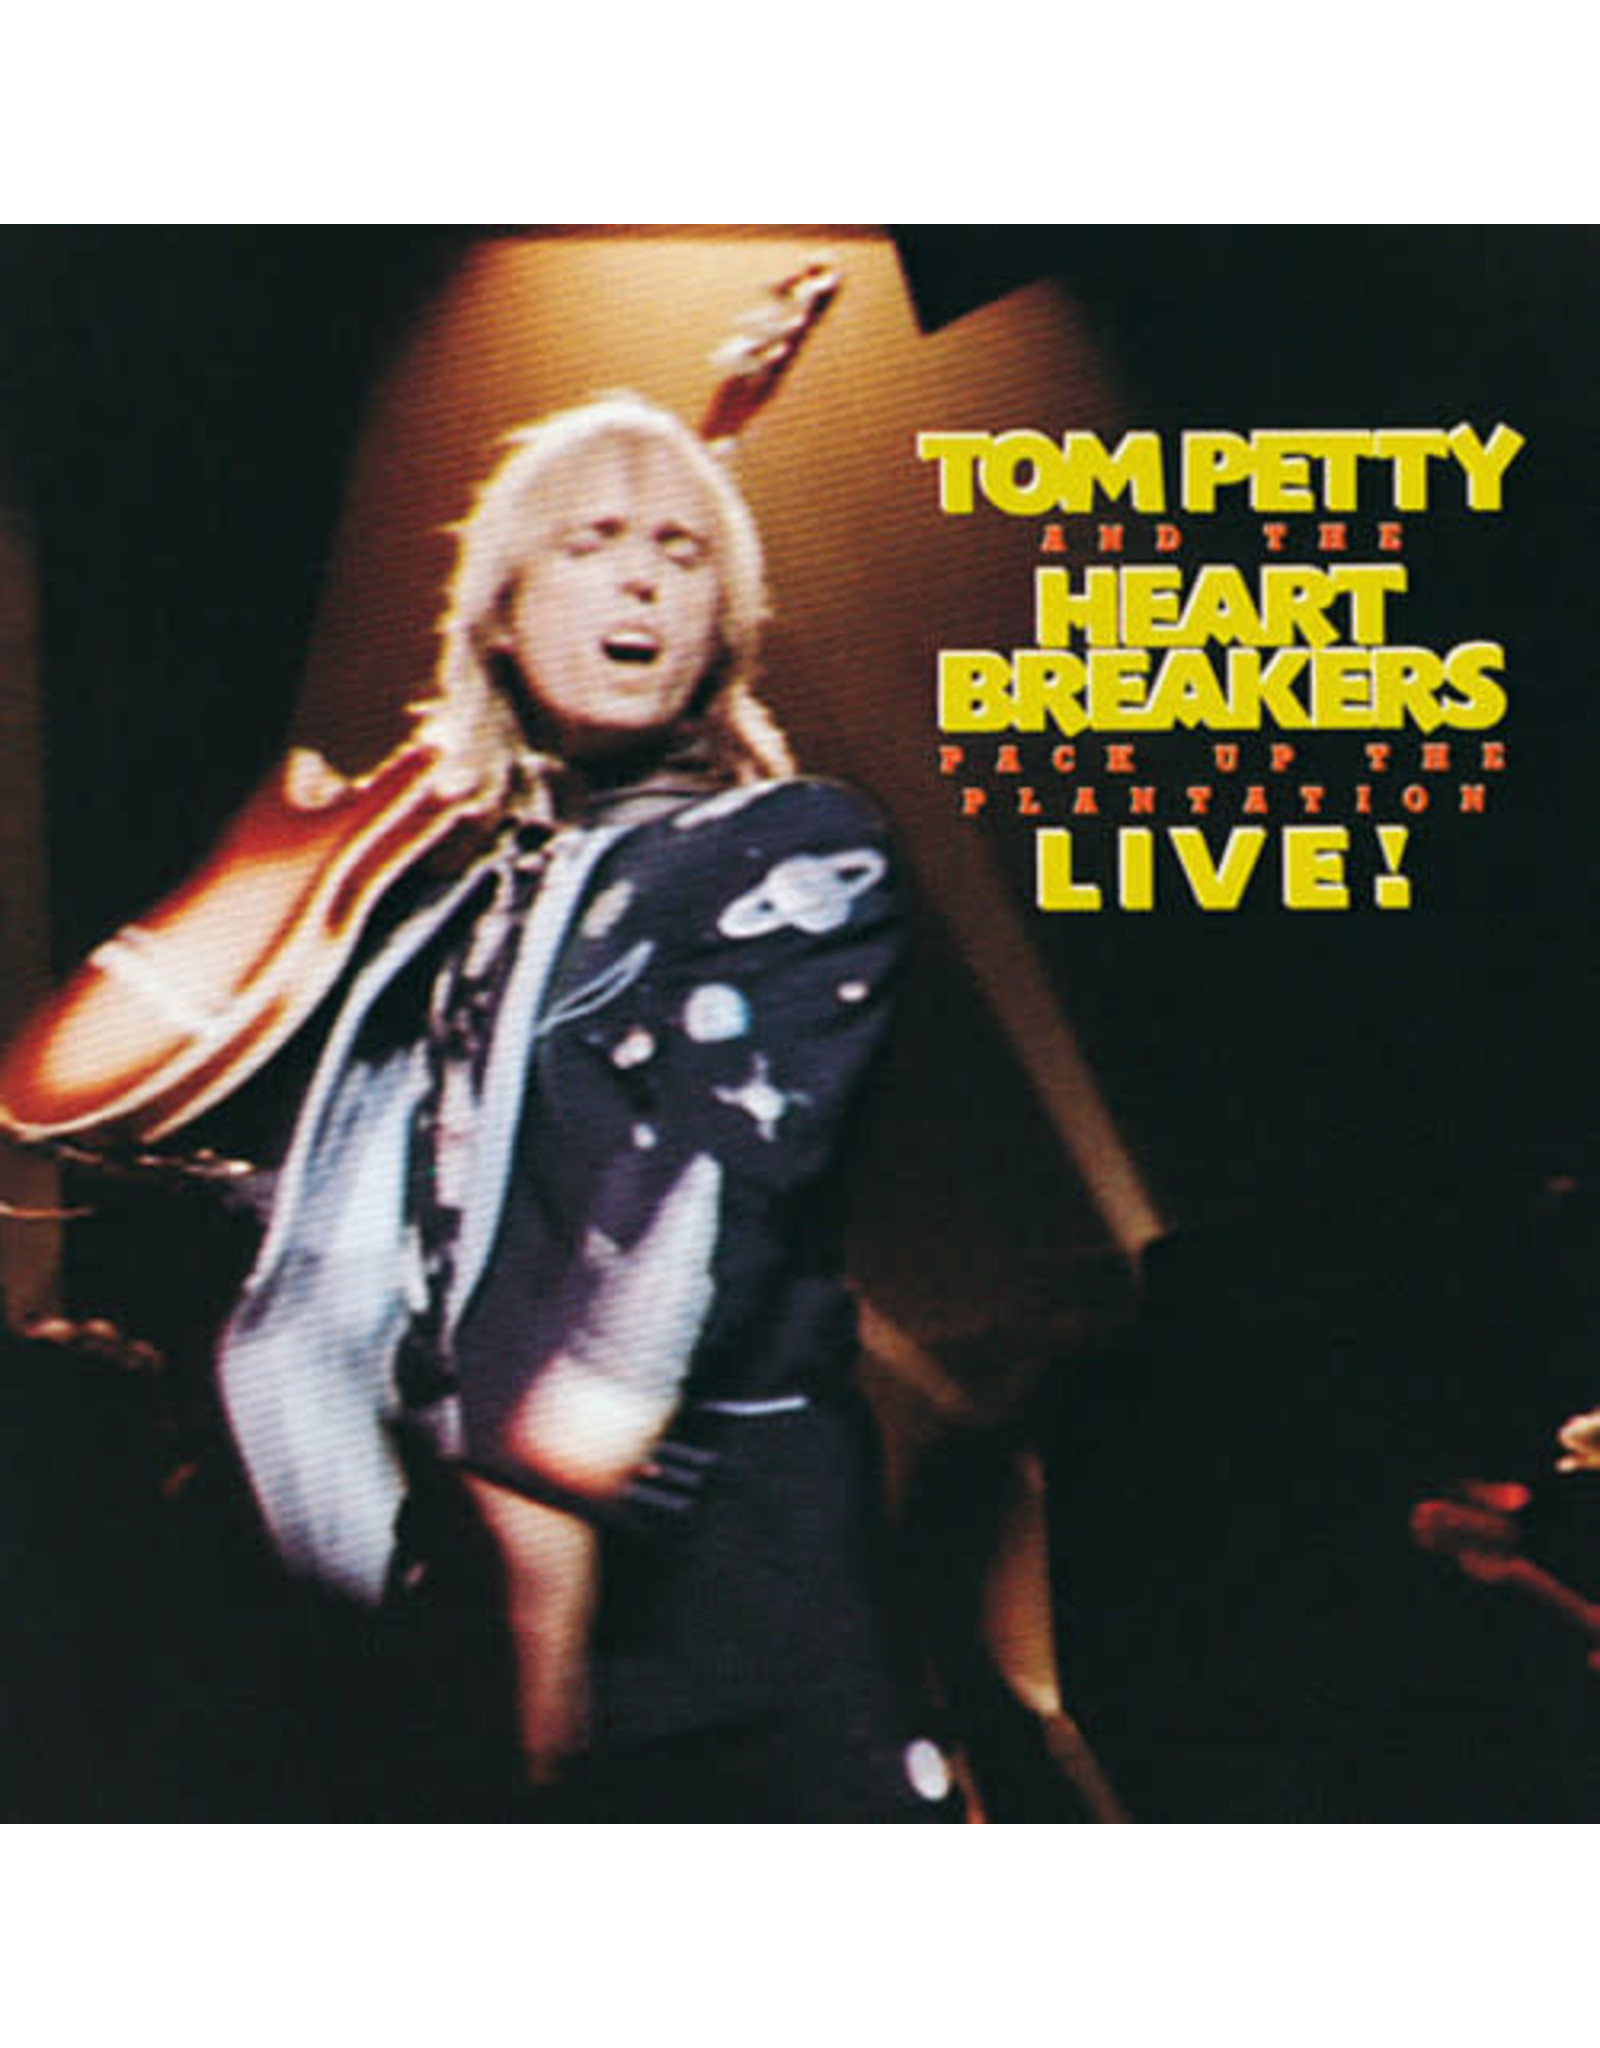 Petty, Tom - Pack Up The Plantation Live! LP